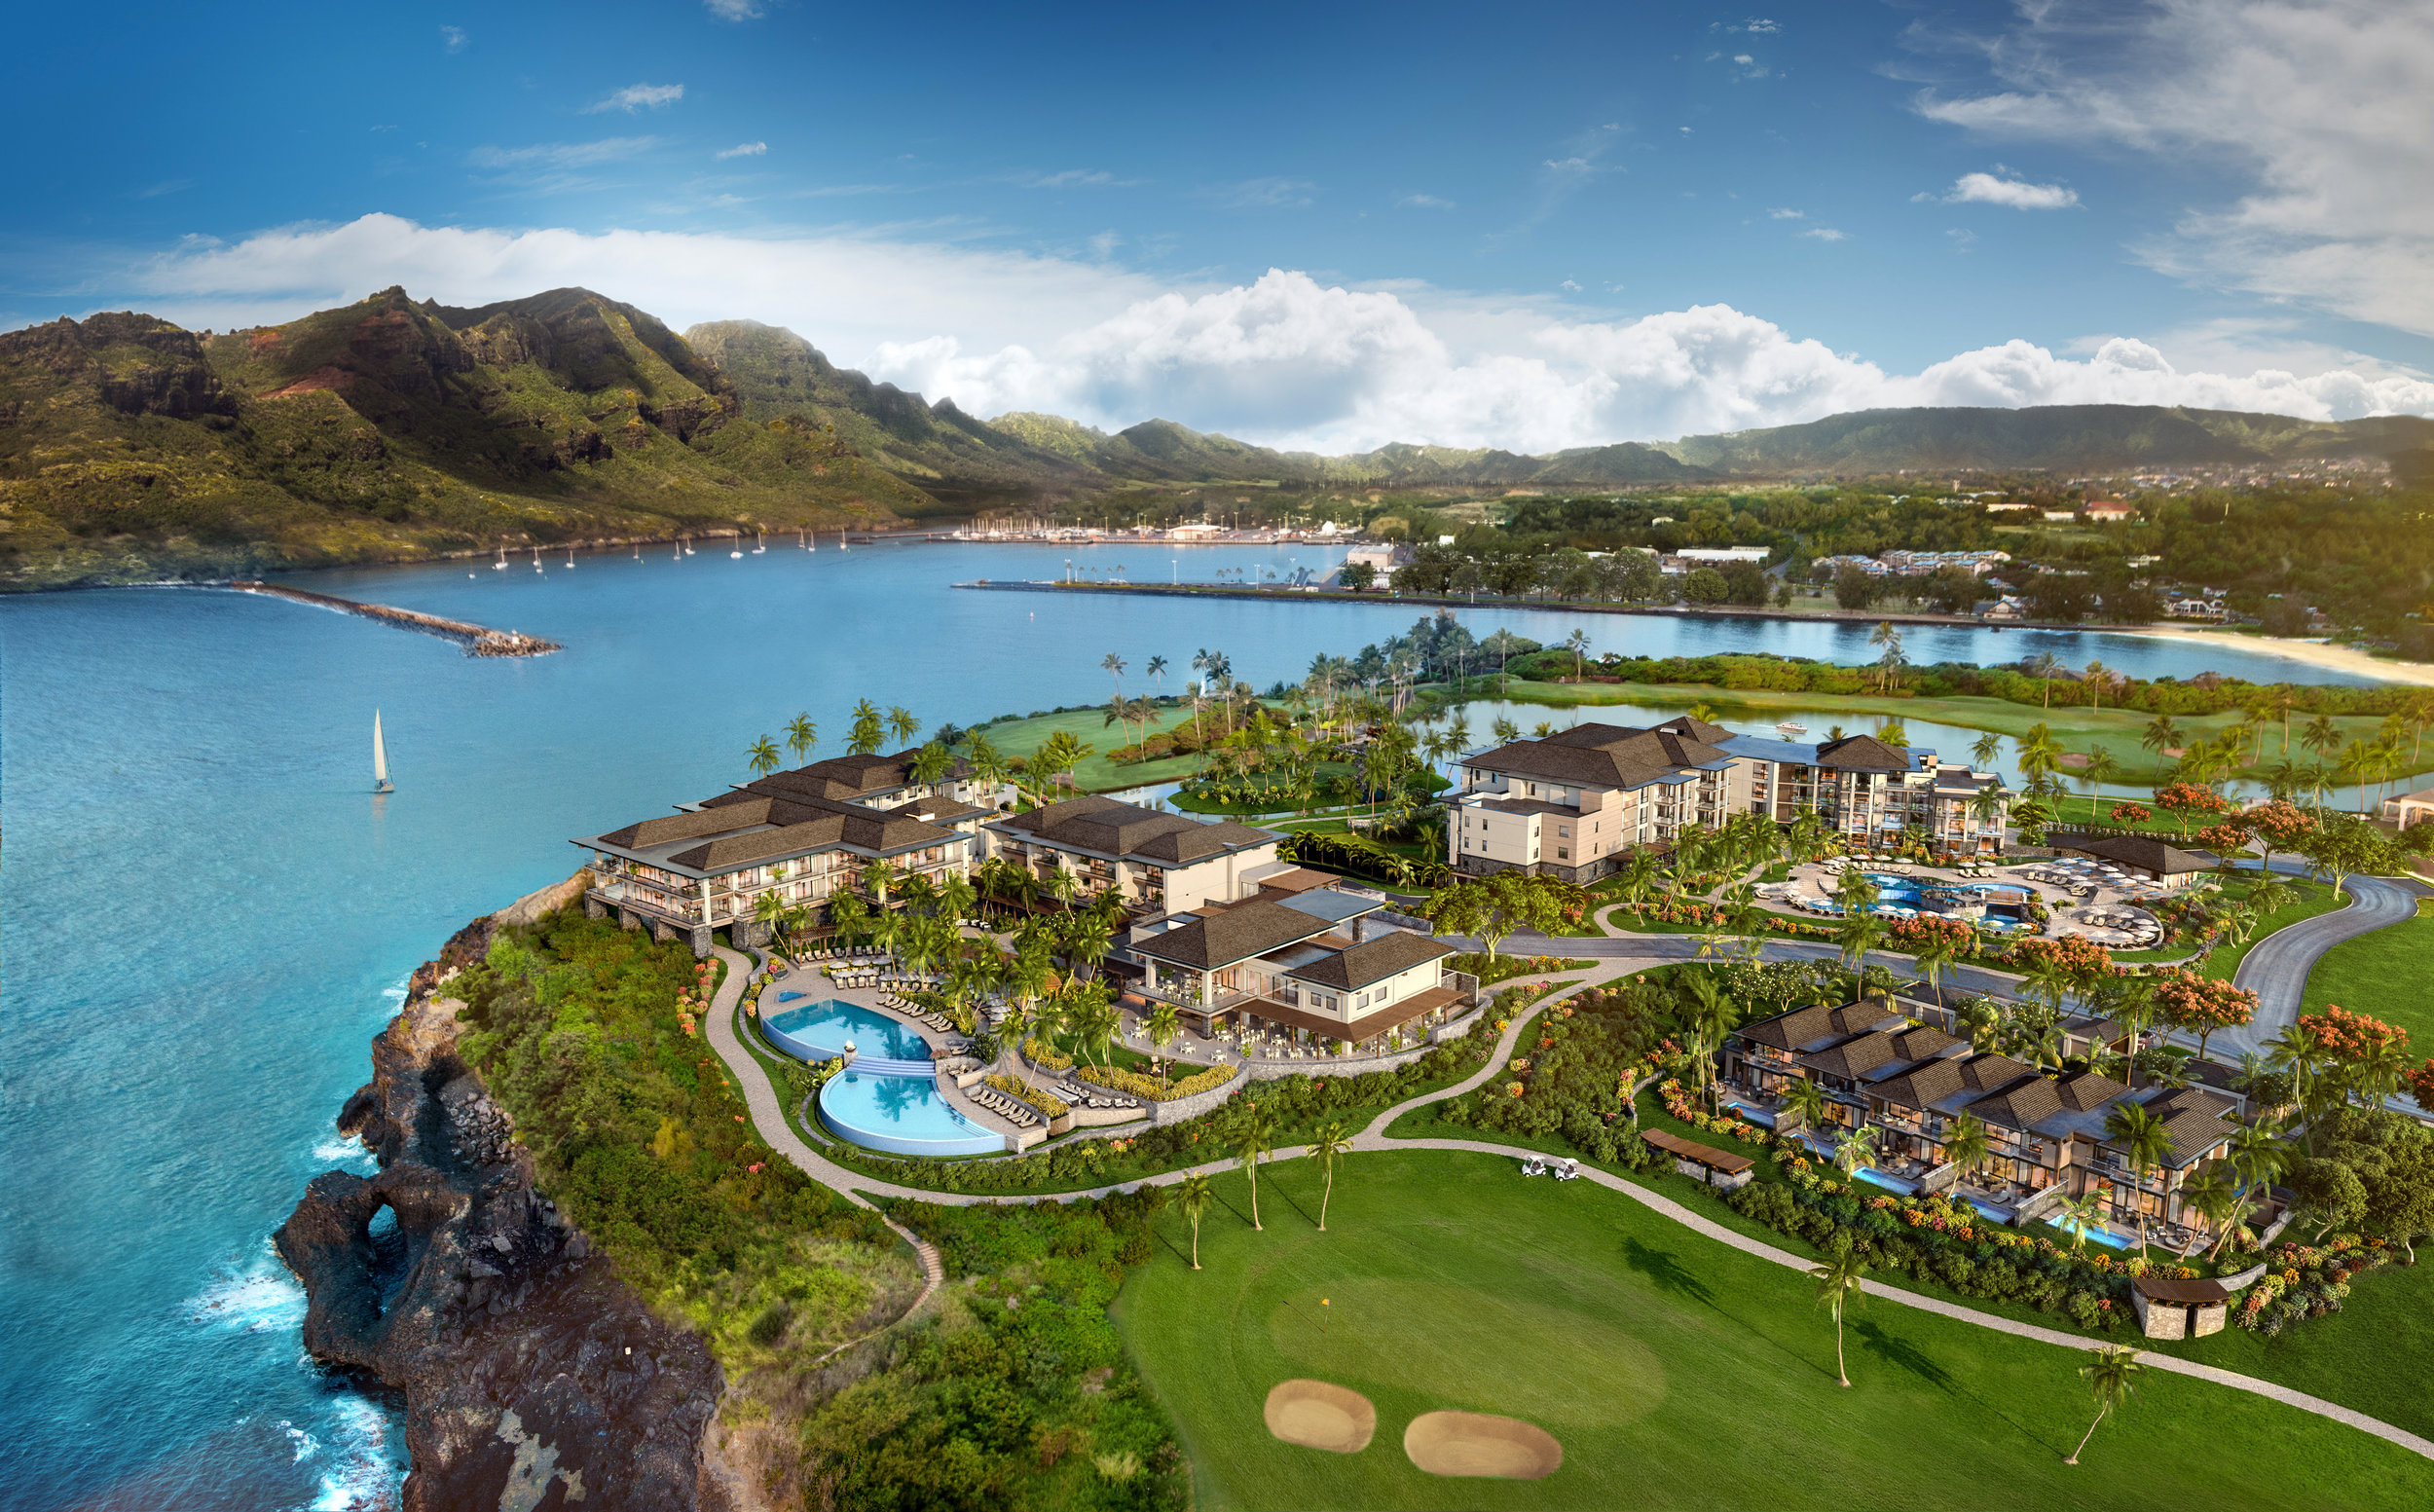 Come discover the newest paradise perfected opening June 15, 2018.